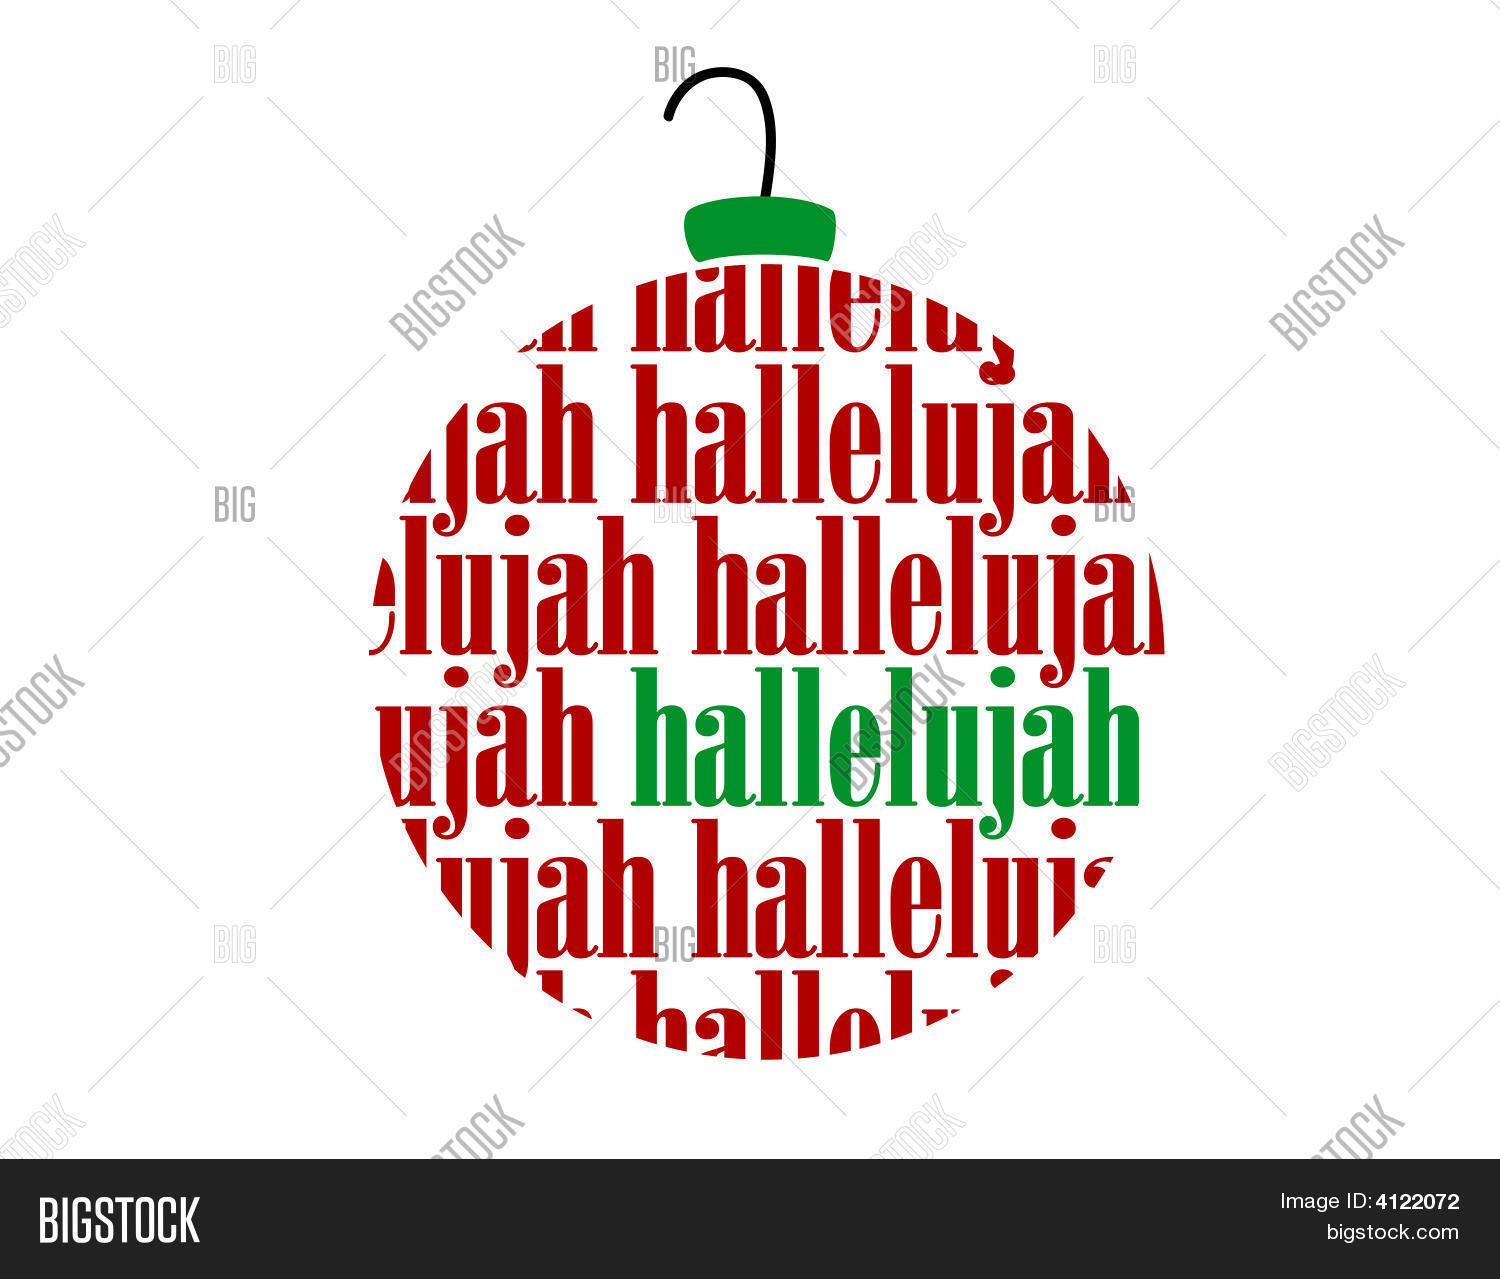 Christmas Hallelujah.Hallelujah Text Word Vector Photo Free Trial Bigstock